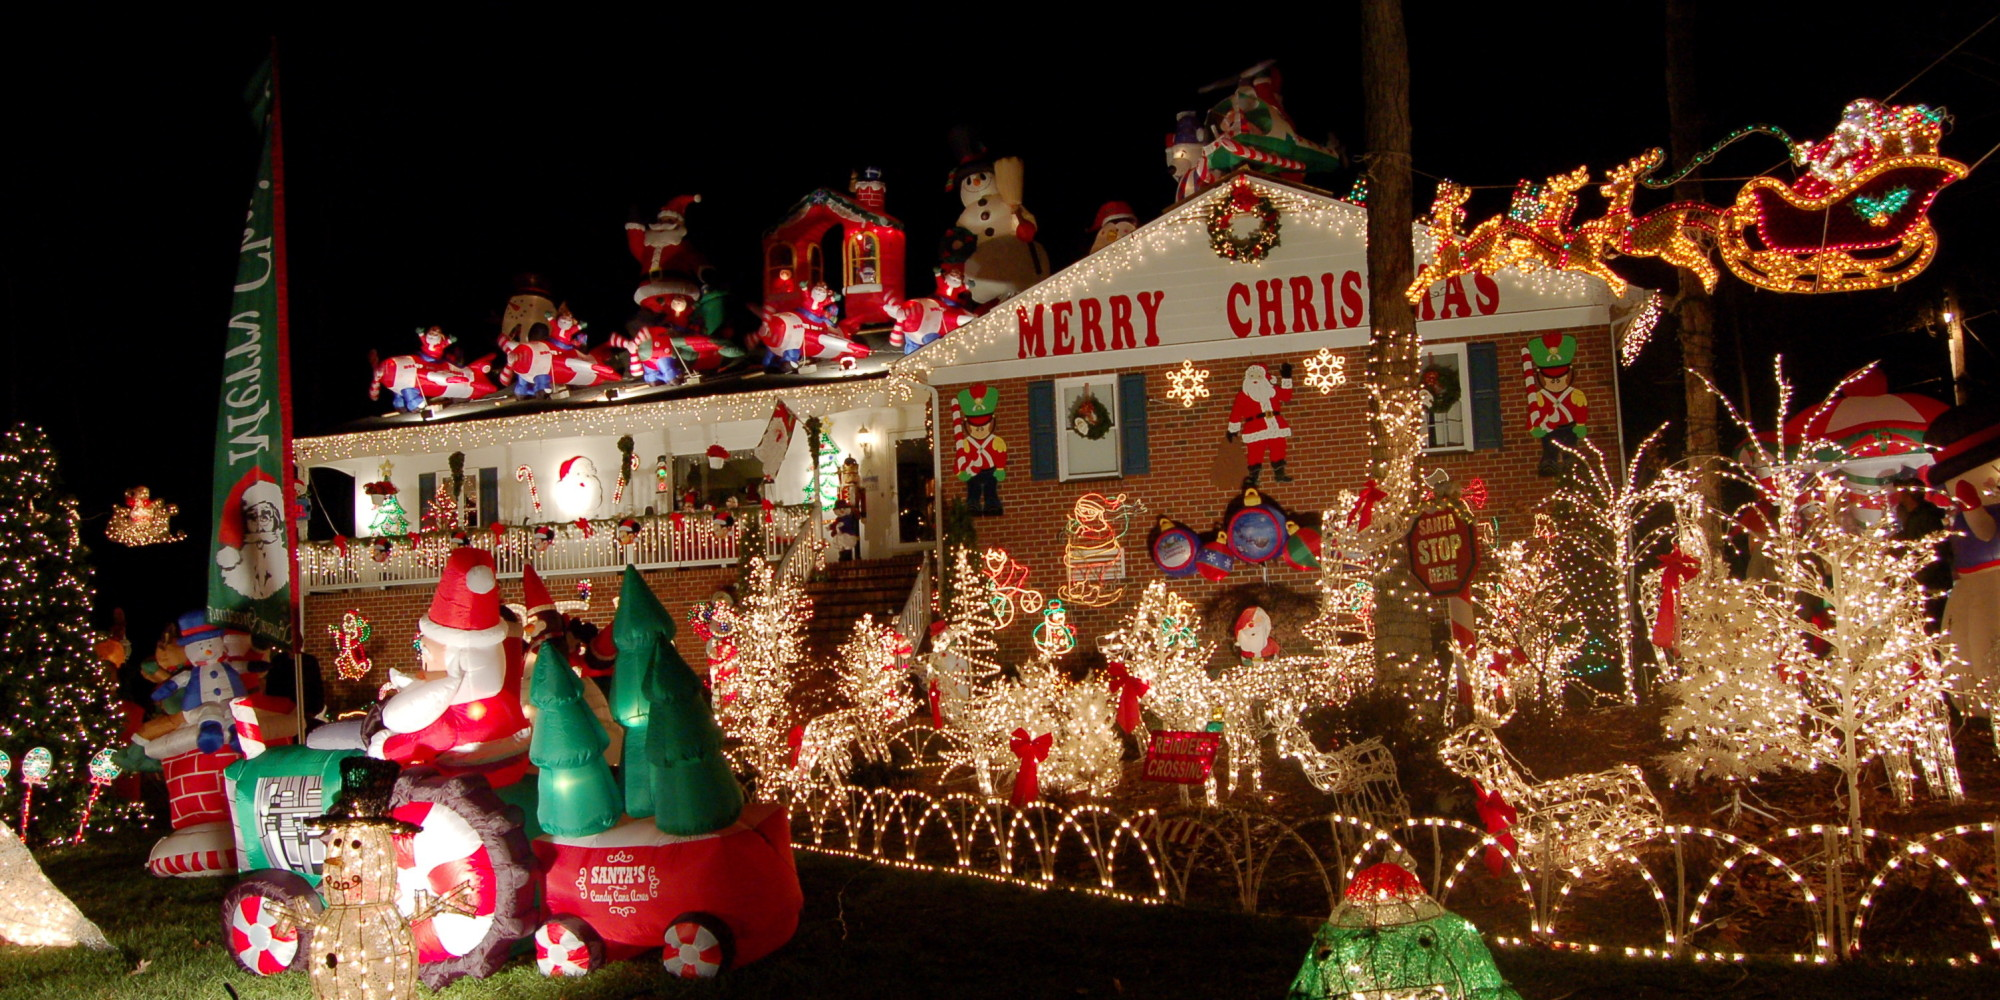 Tacky christmas decorations that will ruin the holidays